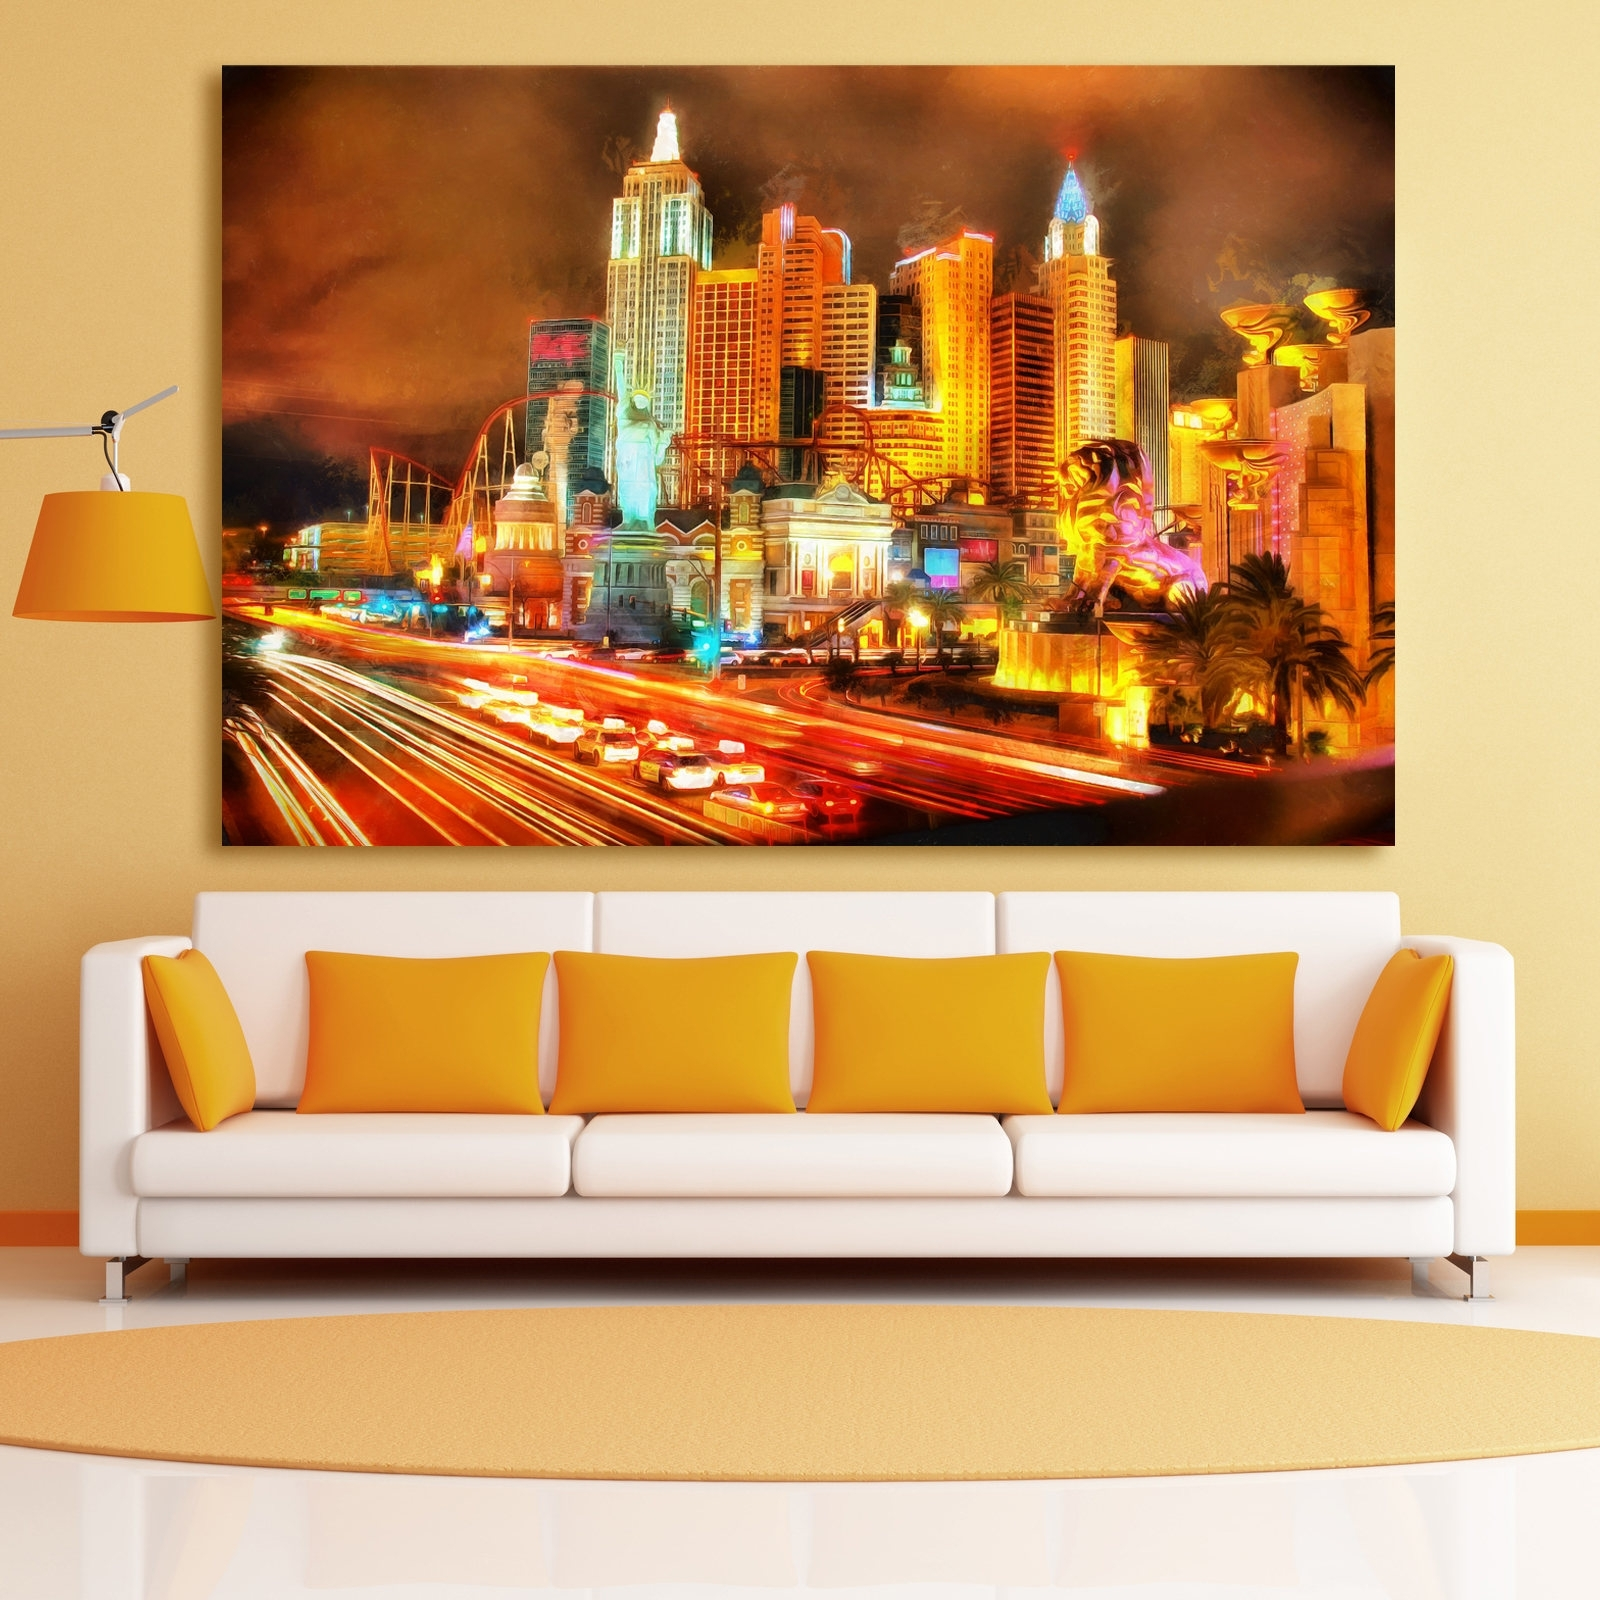 Las Vegas Night Skyline Canvas, Large Art Wall Oil Painting, Las Pertaining To Current Las Vegas Canvas Wall Art (View 6 of 15)